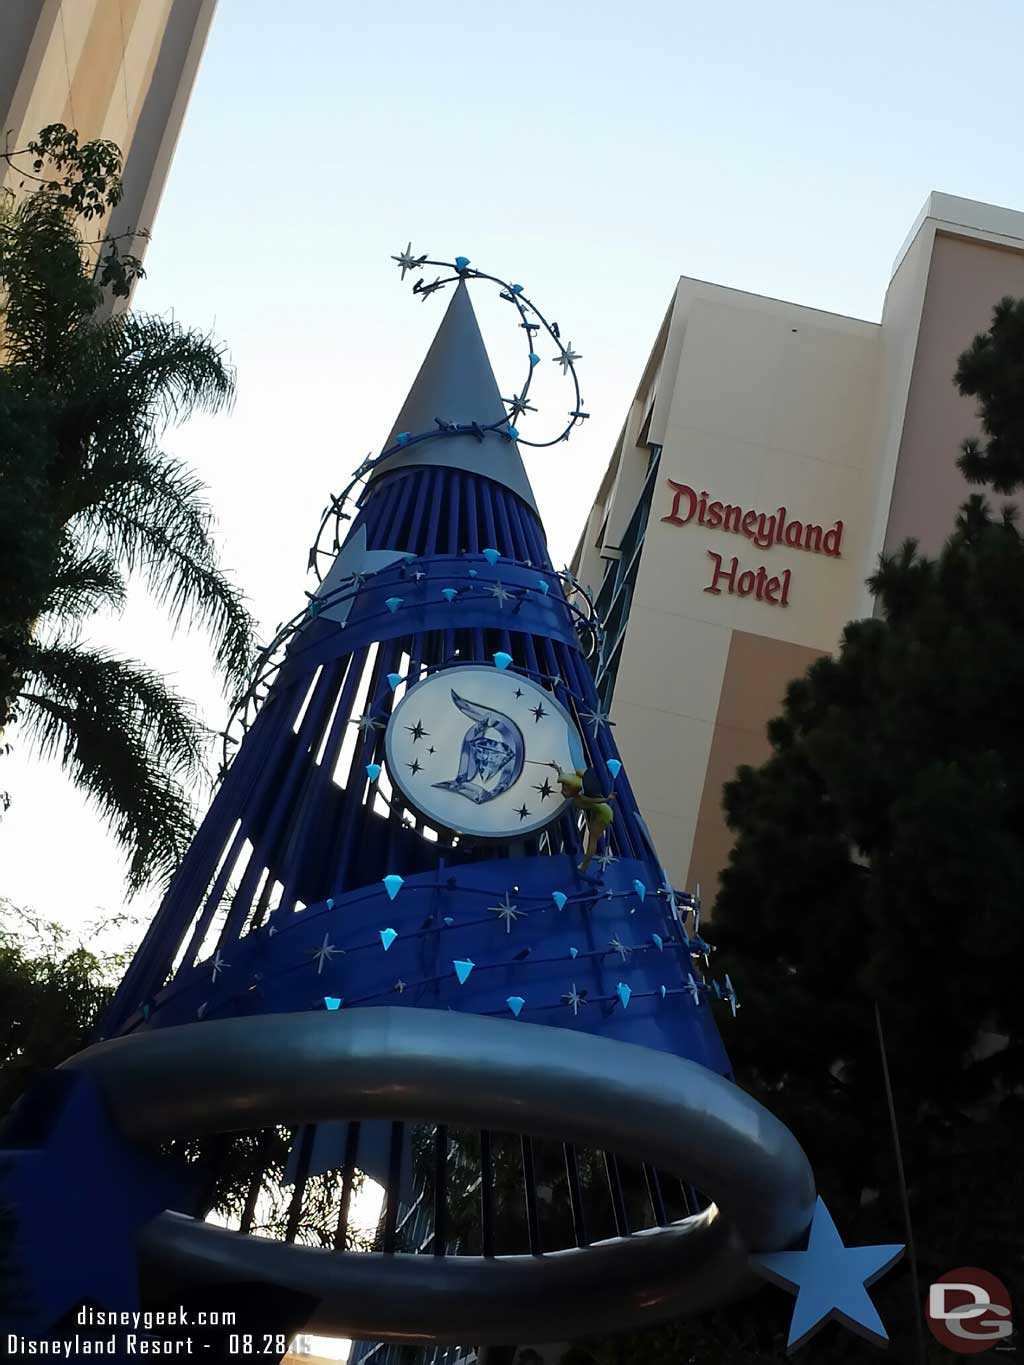 The #Disneyland Hotel sorcerer hat has diamonds for #Disneyland60